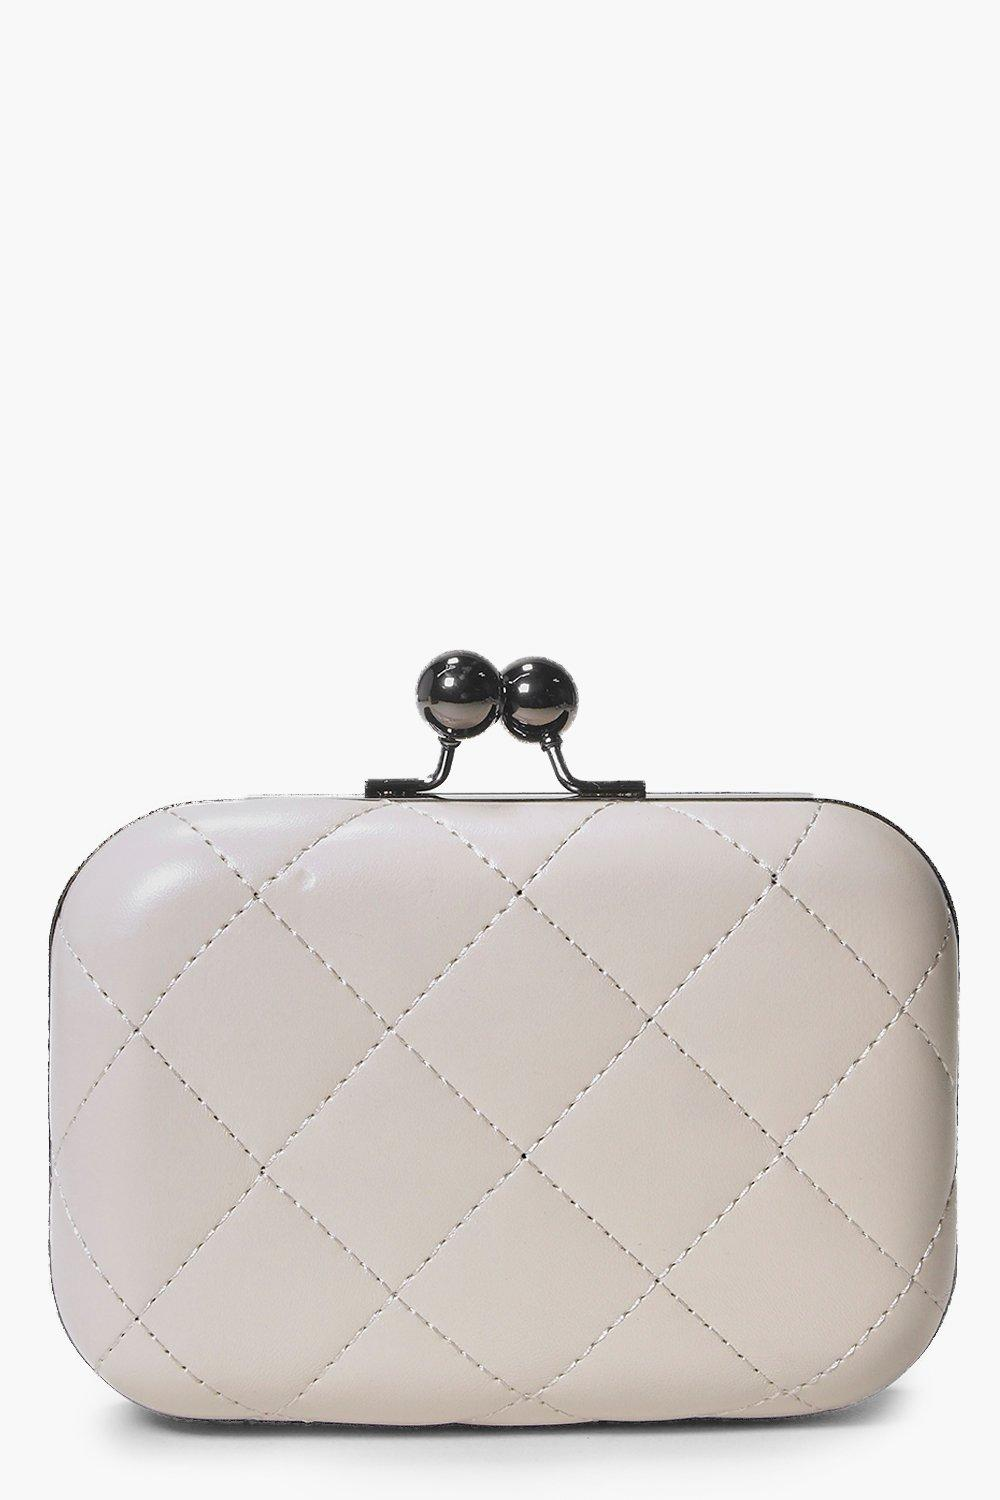 Quilted Box Clutch Bag cream